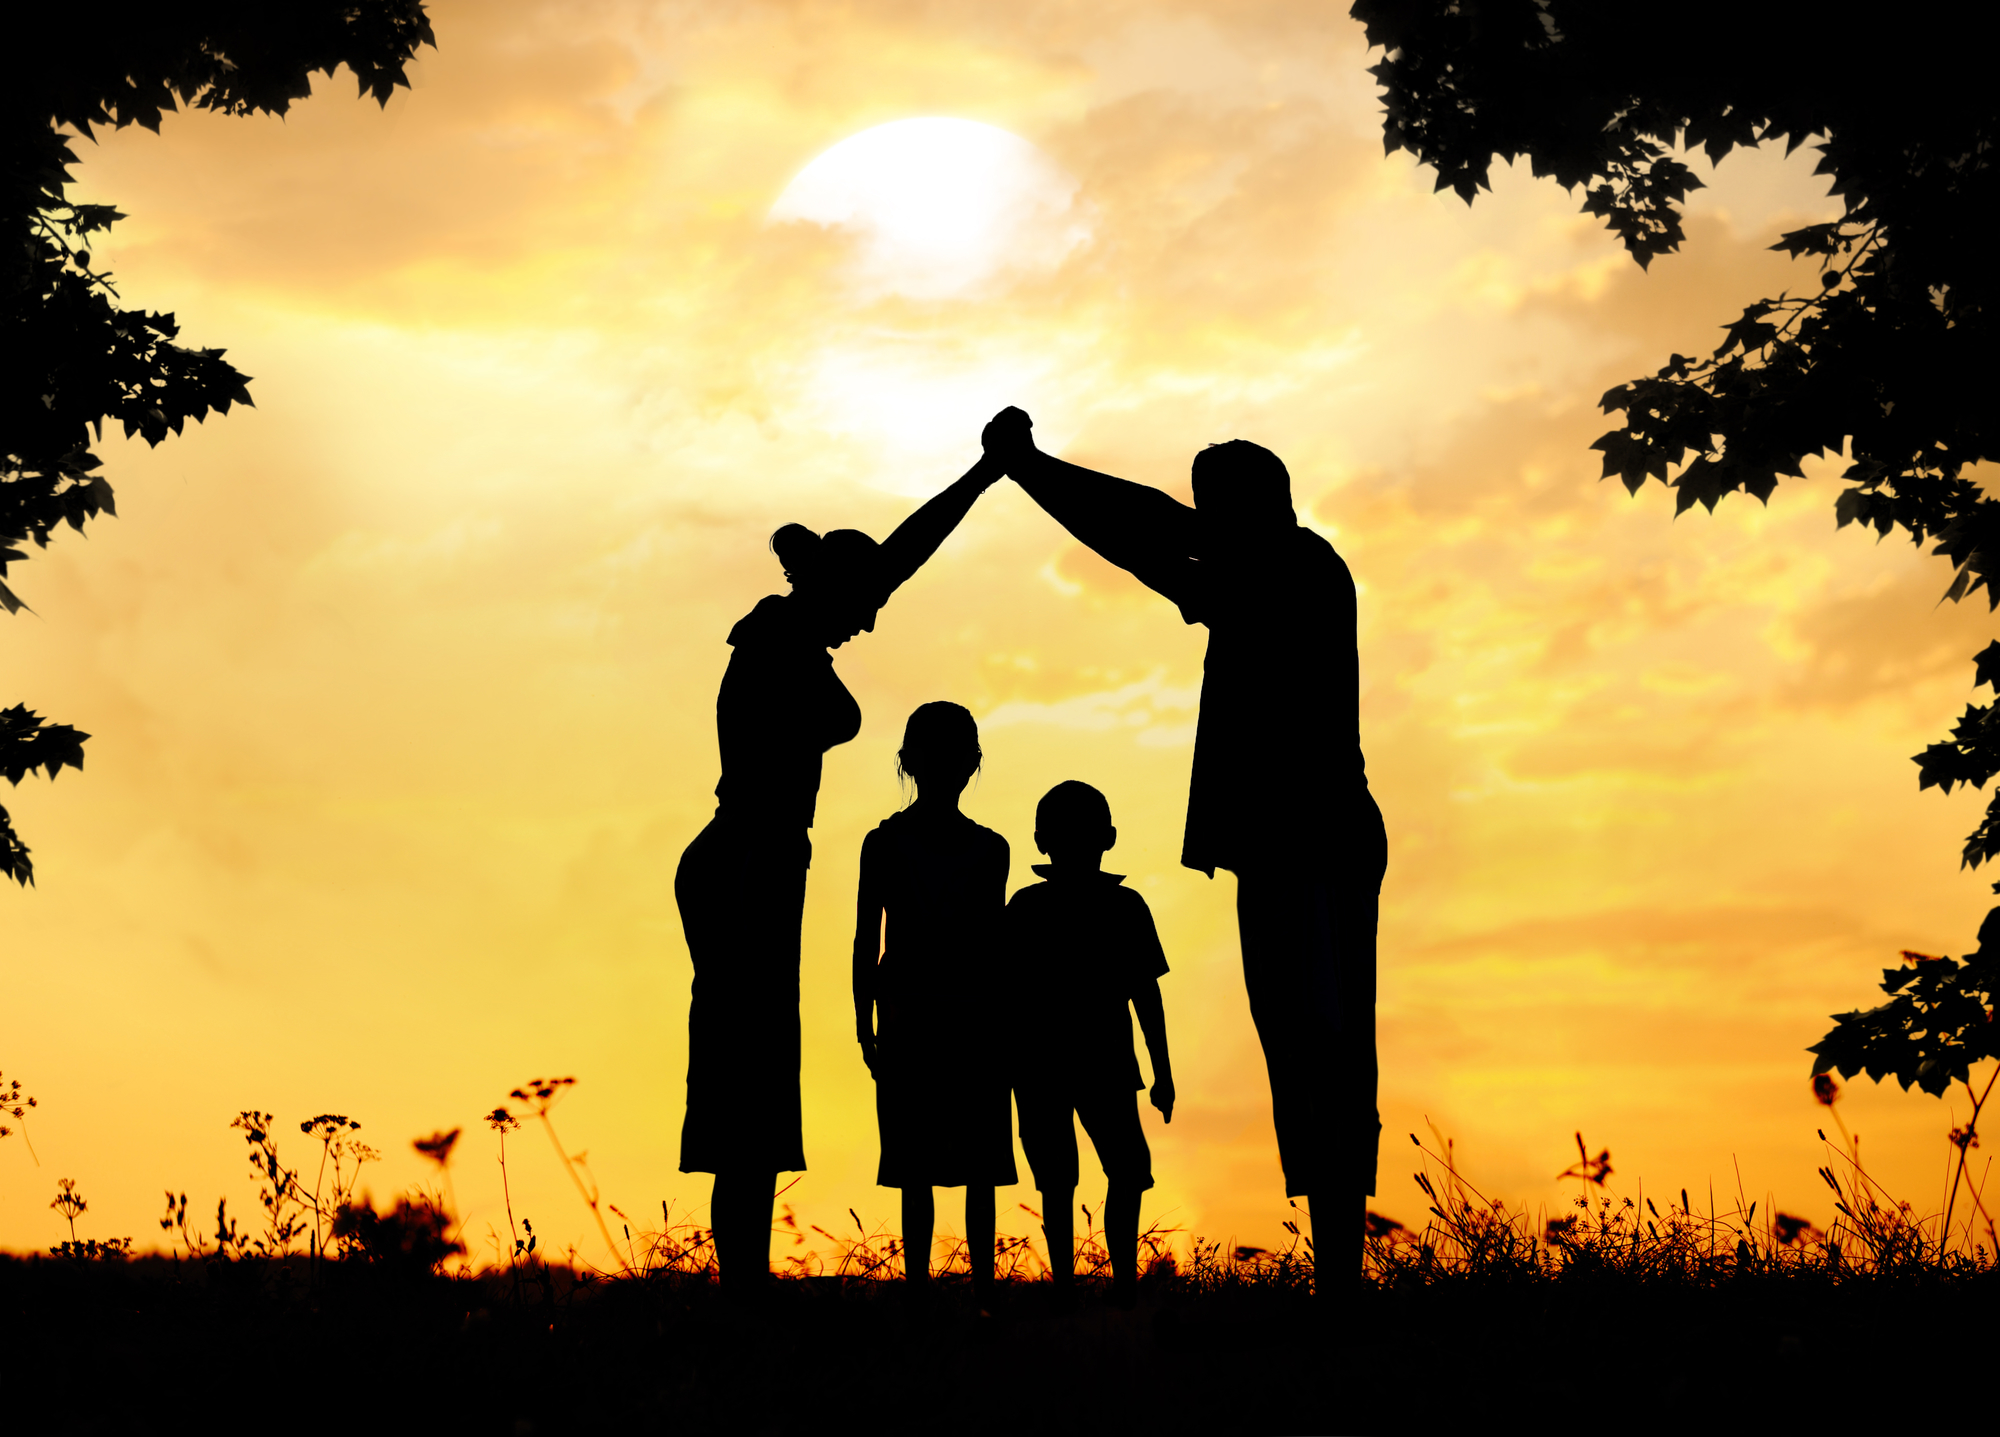 A family during sunset